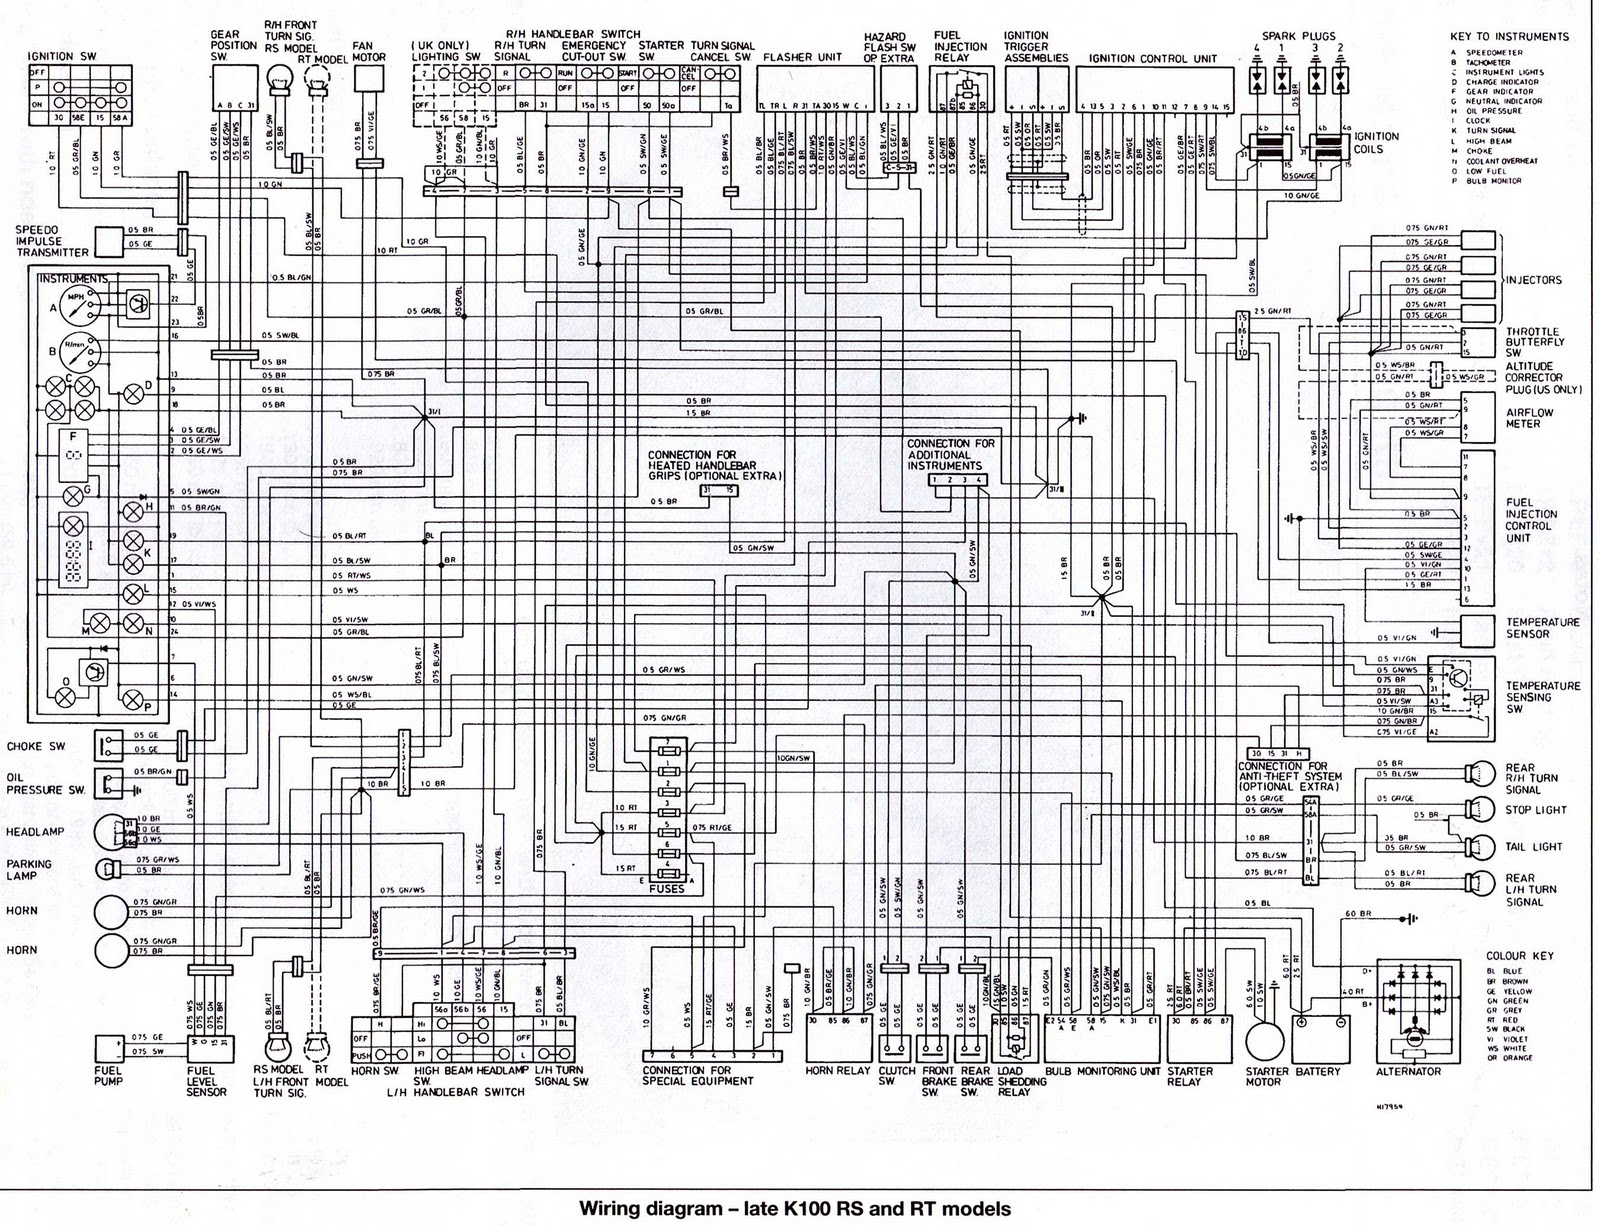 six pin trailer wiring diagram 2004 pontiac grand am headlight may 2011 all about diagrams